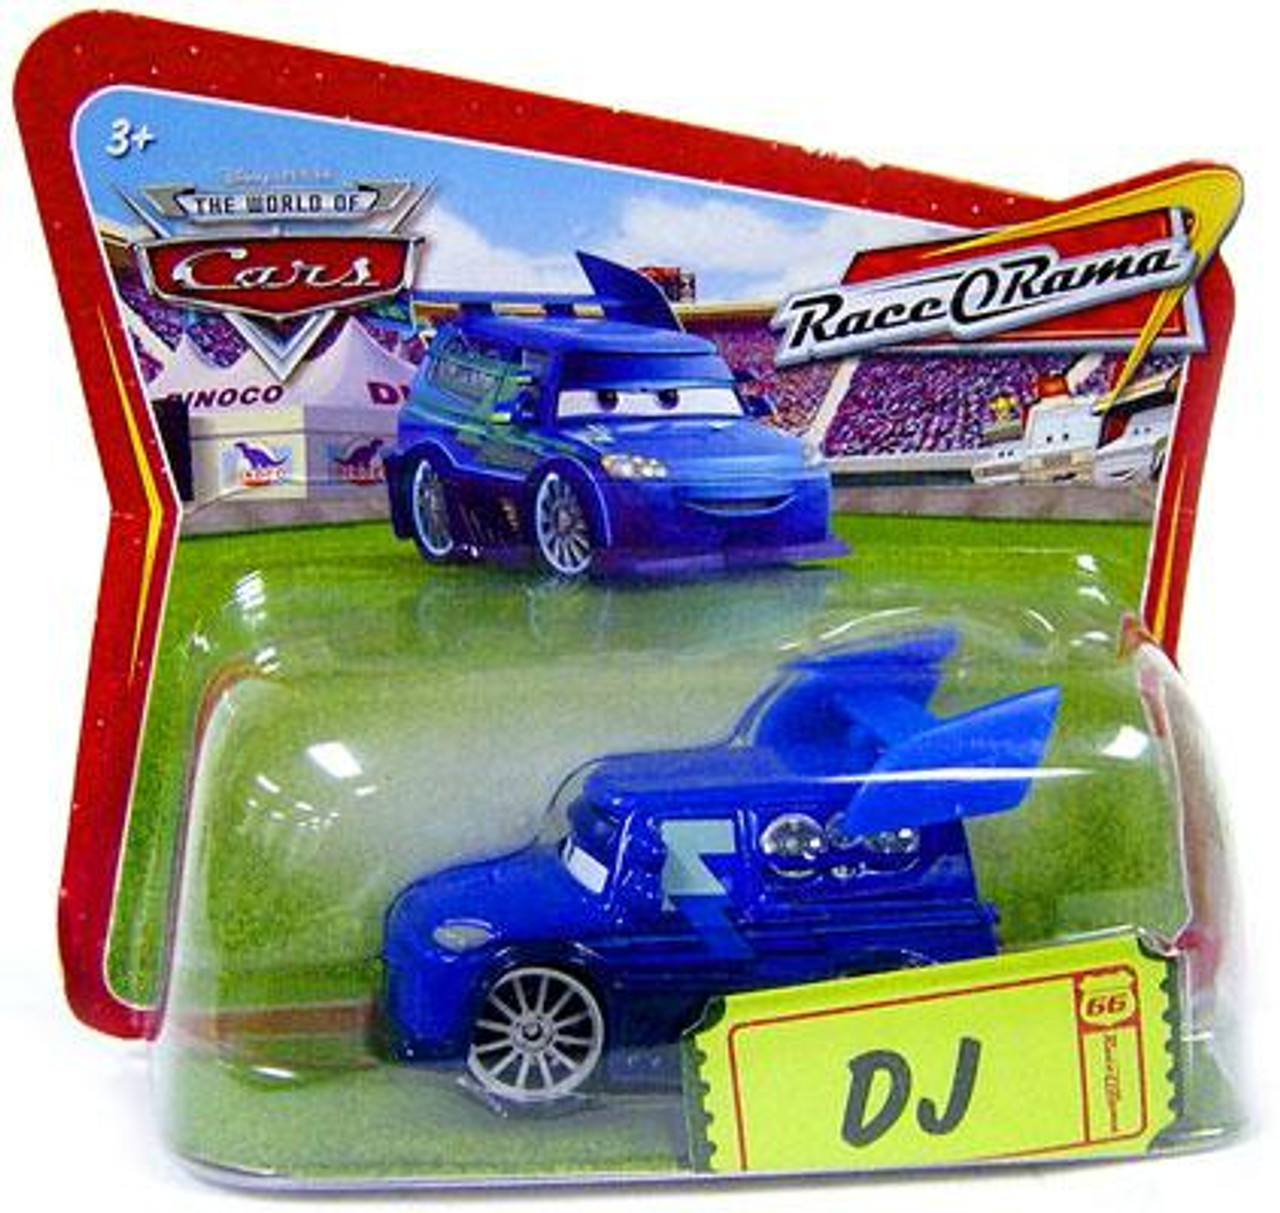 Disney Cars The World of Cars Race-O-Rama DJ Diecast Car [Checkout Lane Package]